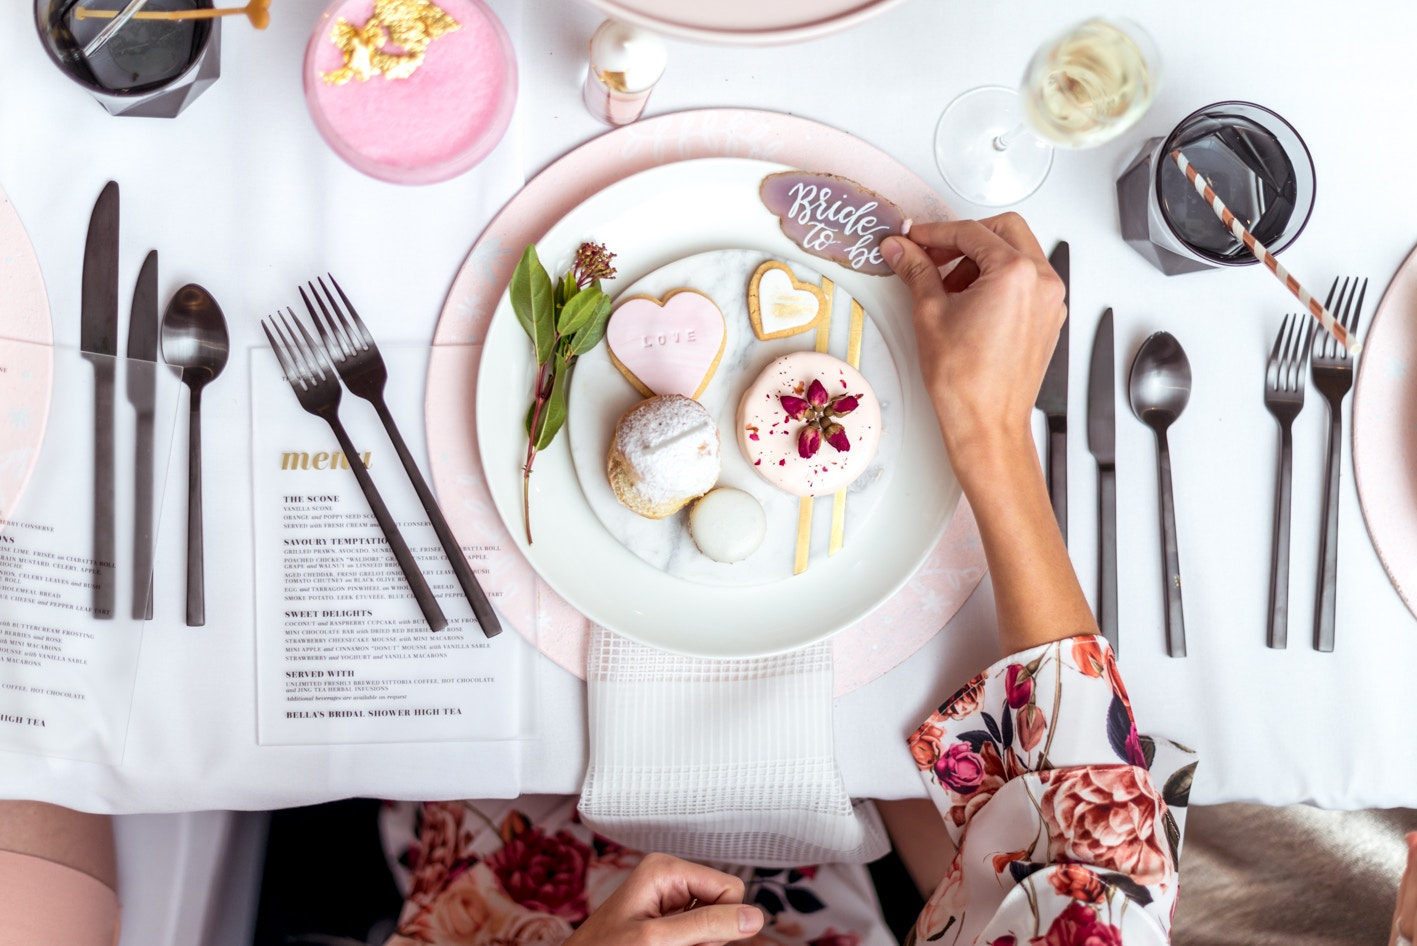 THE WESTIN MELBOURNE BRIDAL SHOWER